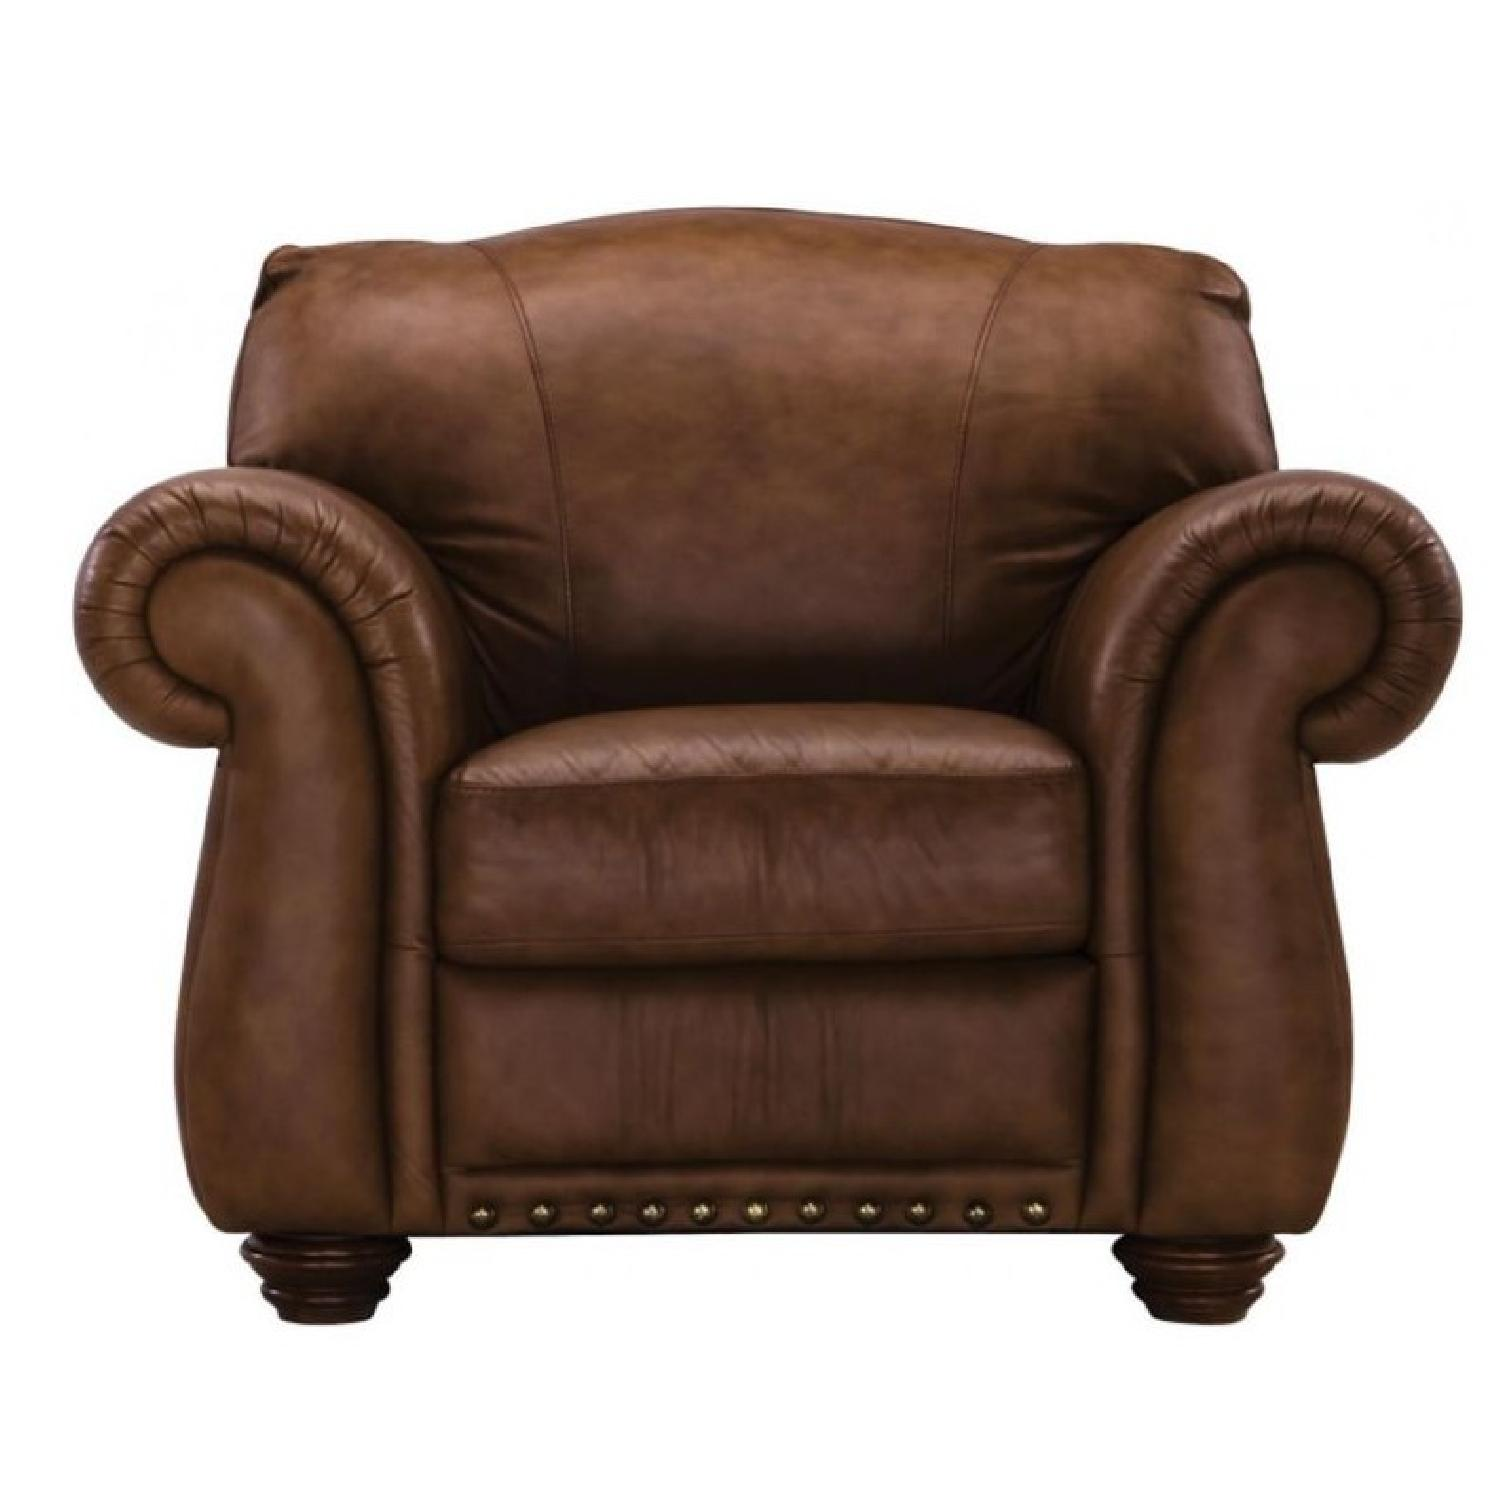 Raymour & Flanigan Elba Reclining Leather Chair